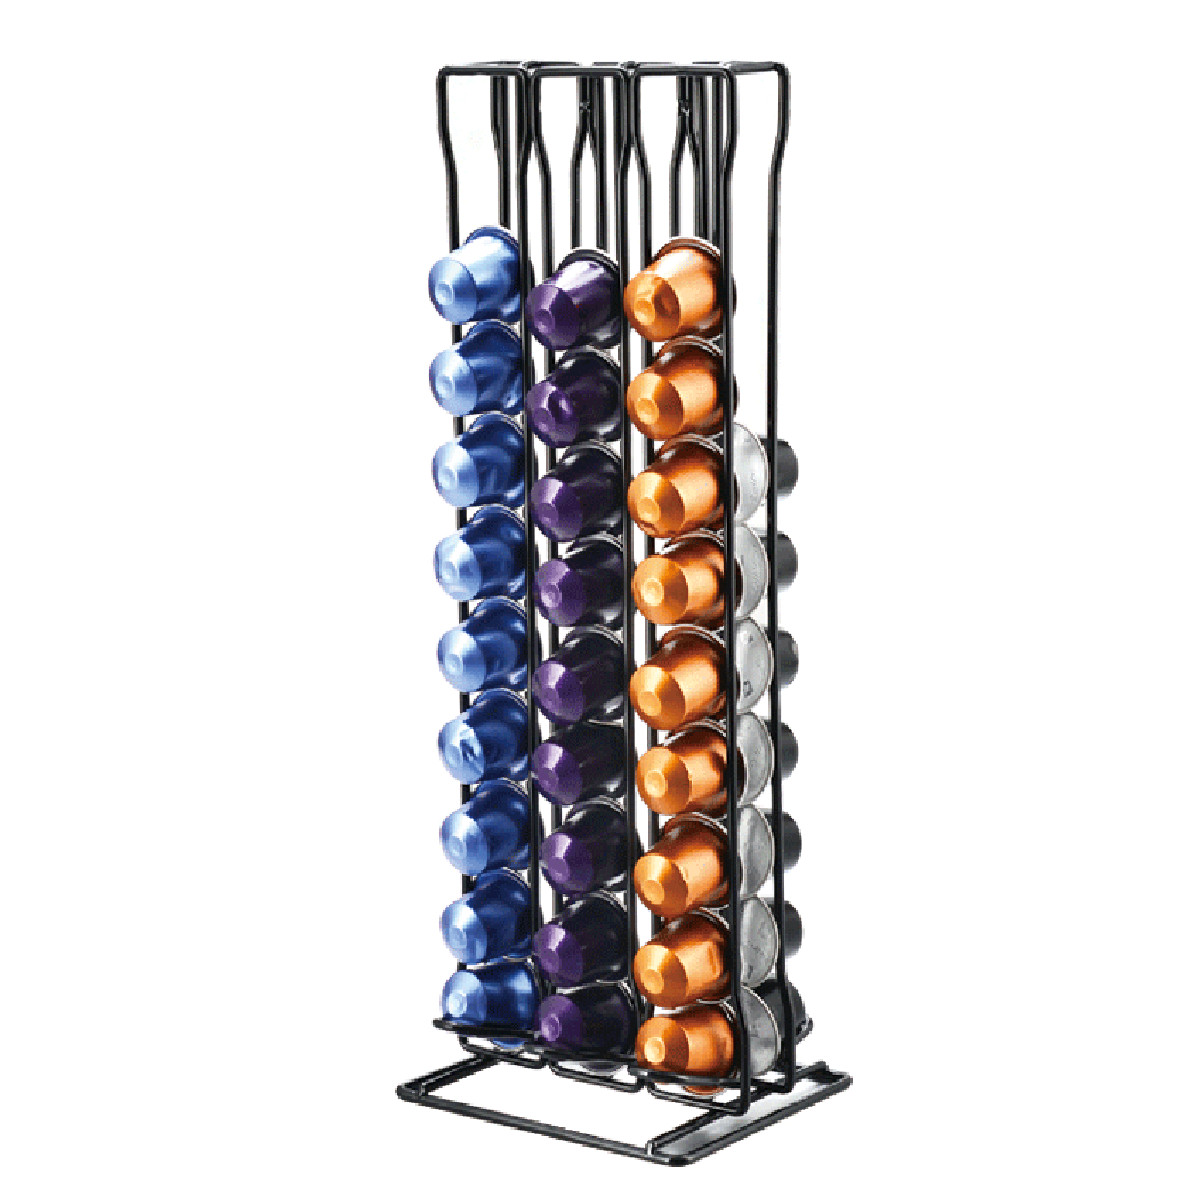 60Pcs Coffee Capsules Pod Display Storage Rack Holder Stand Dispenser For NESPRESSO Coffee Maker Home Kitchen Appliance Parts60Pcs Coffee Capsules Pod Display Storage Rack Holder Stand Dispenser For NESPRESSO Coffee Maker Home Kitchen Appliance Parts